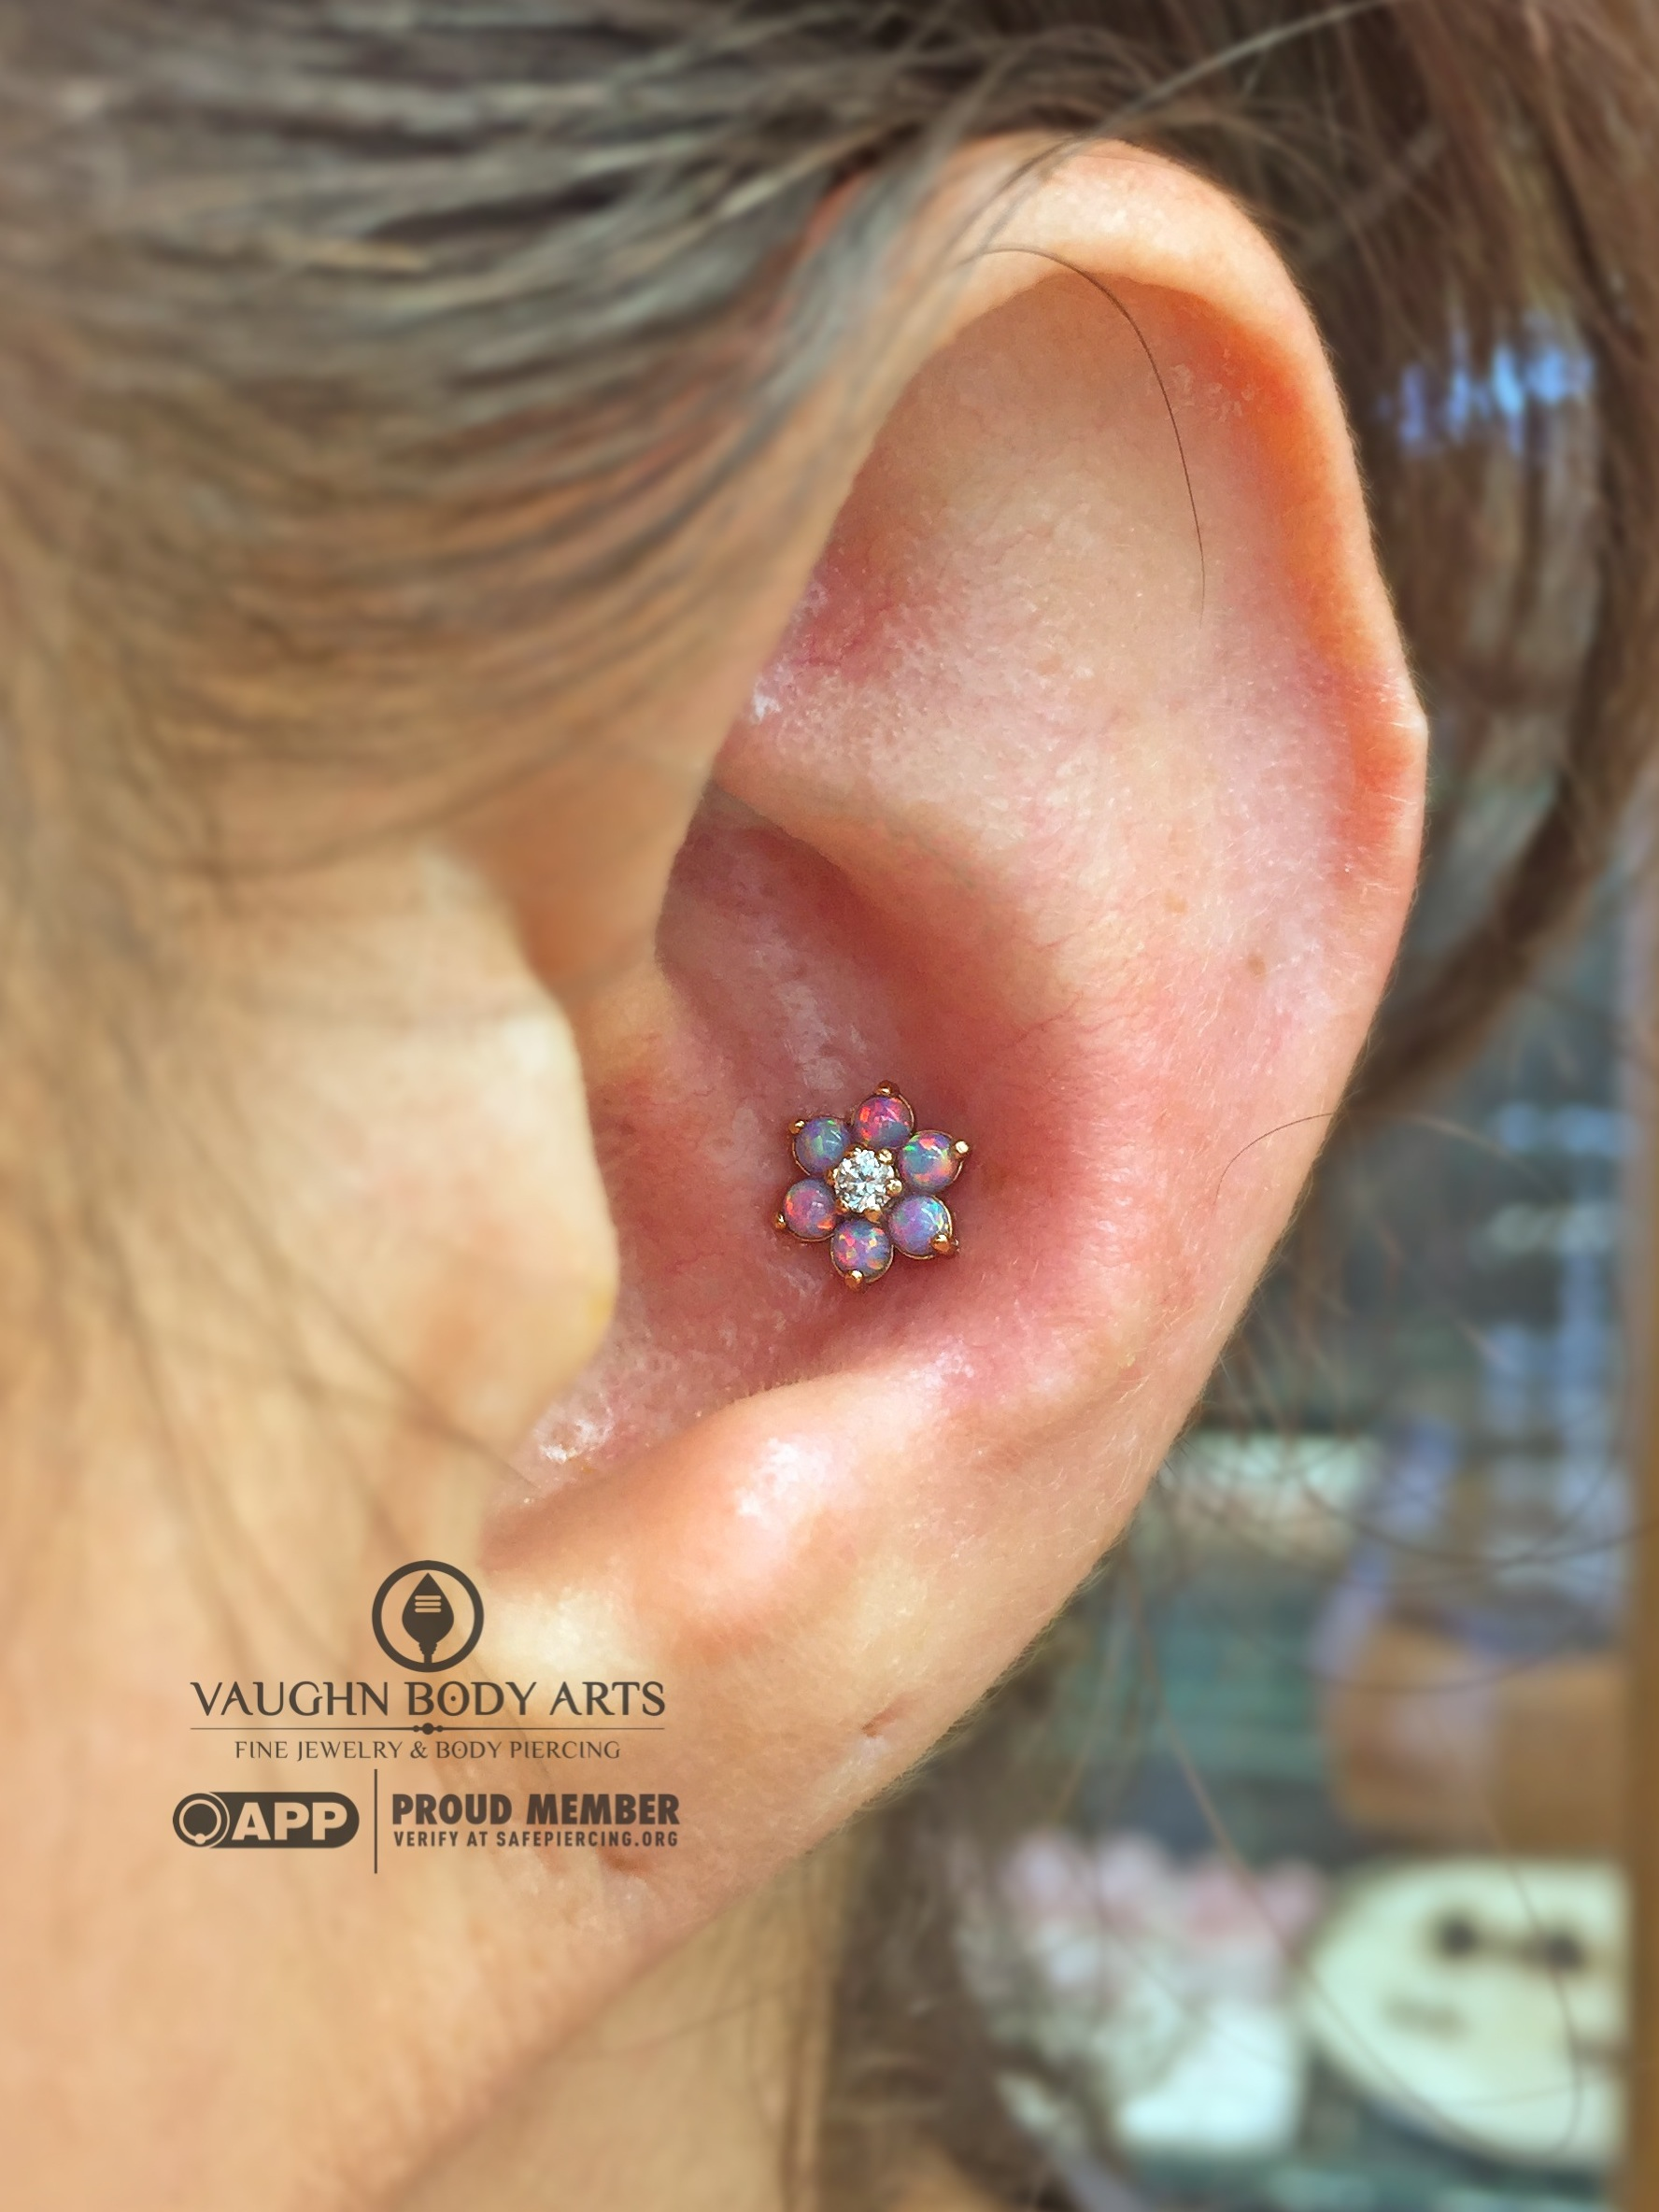 Conch piercing featuring an 18k rose gold flower from Anatometal.